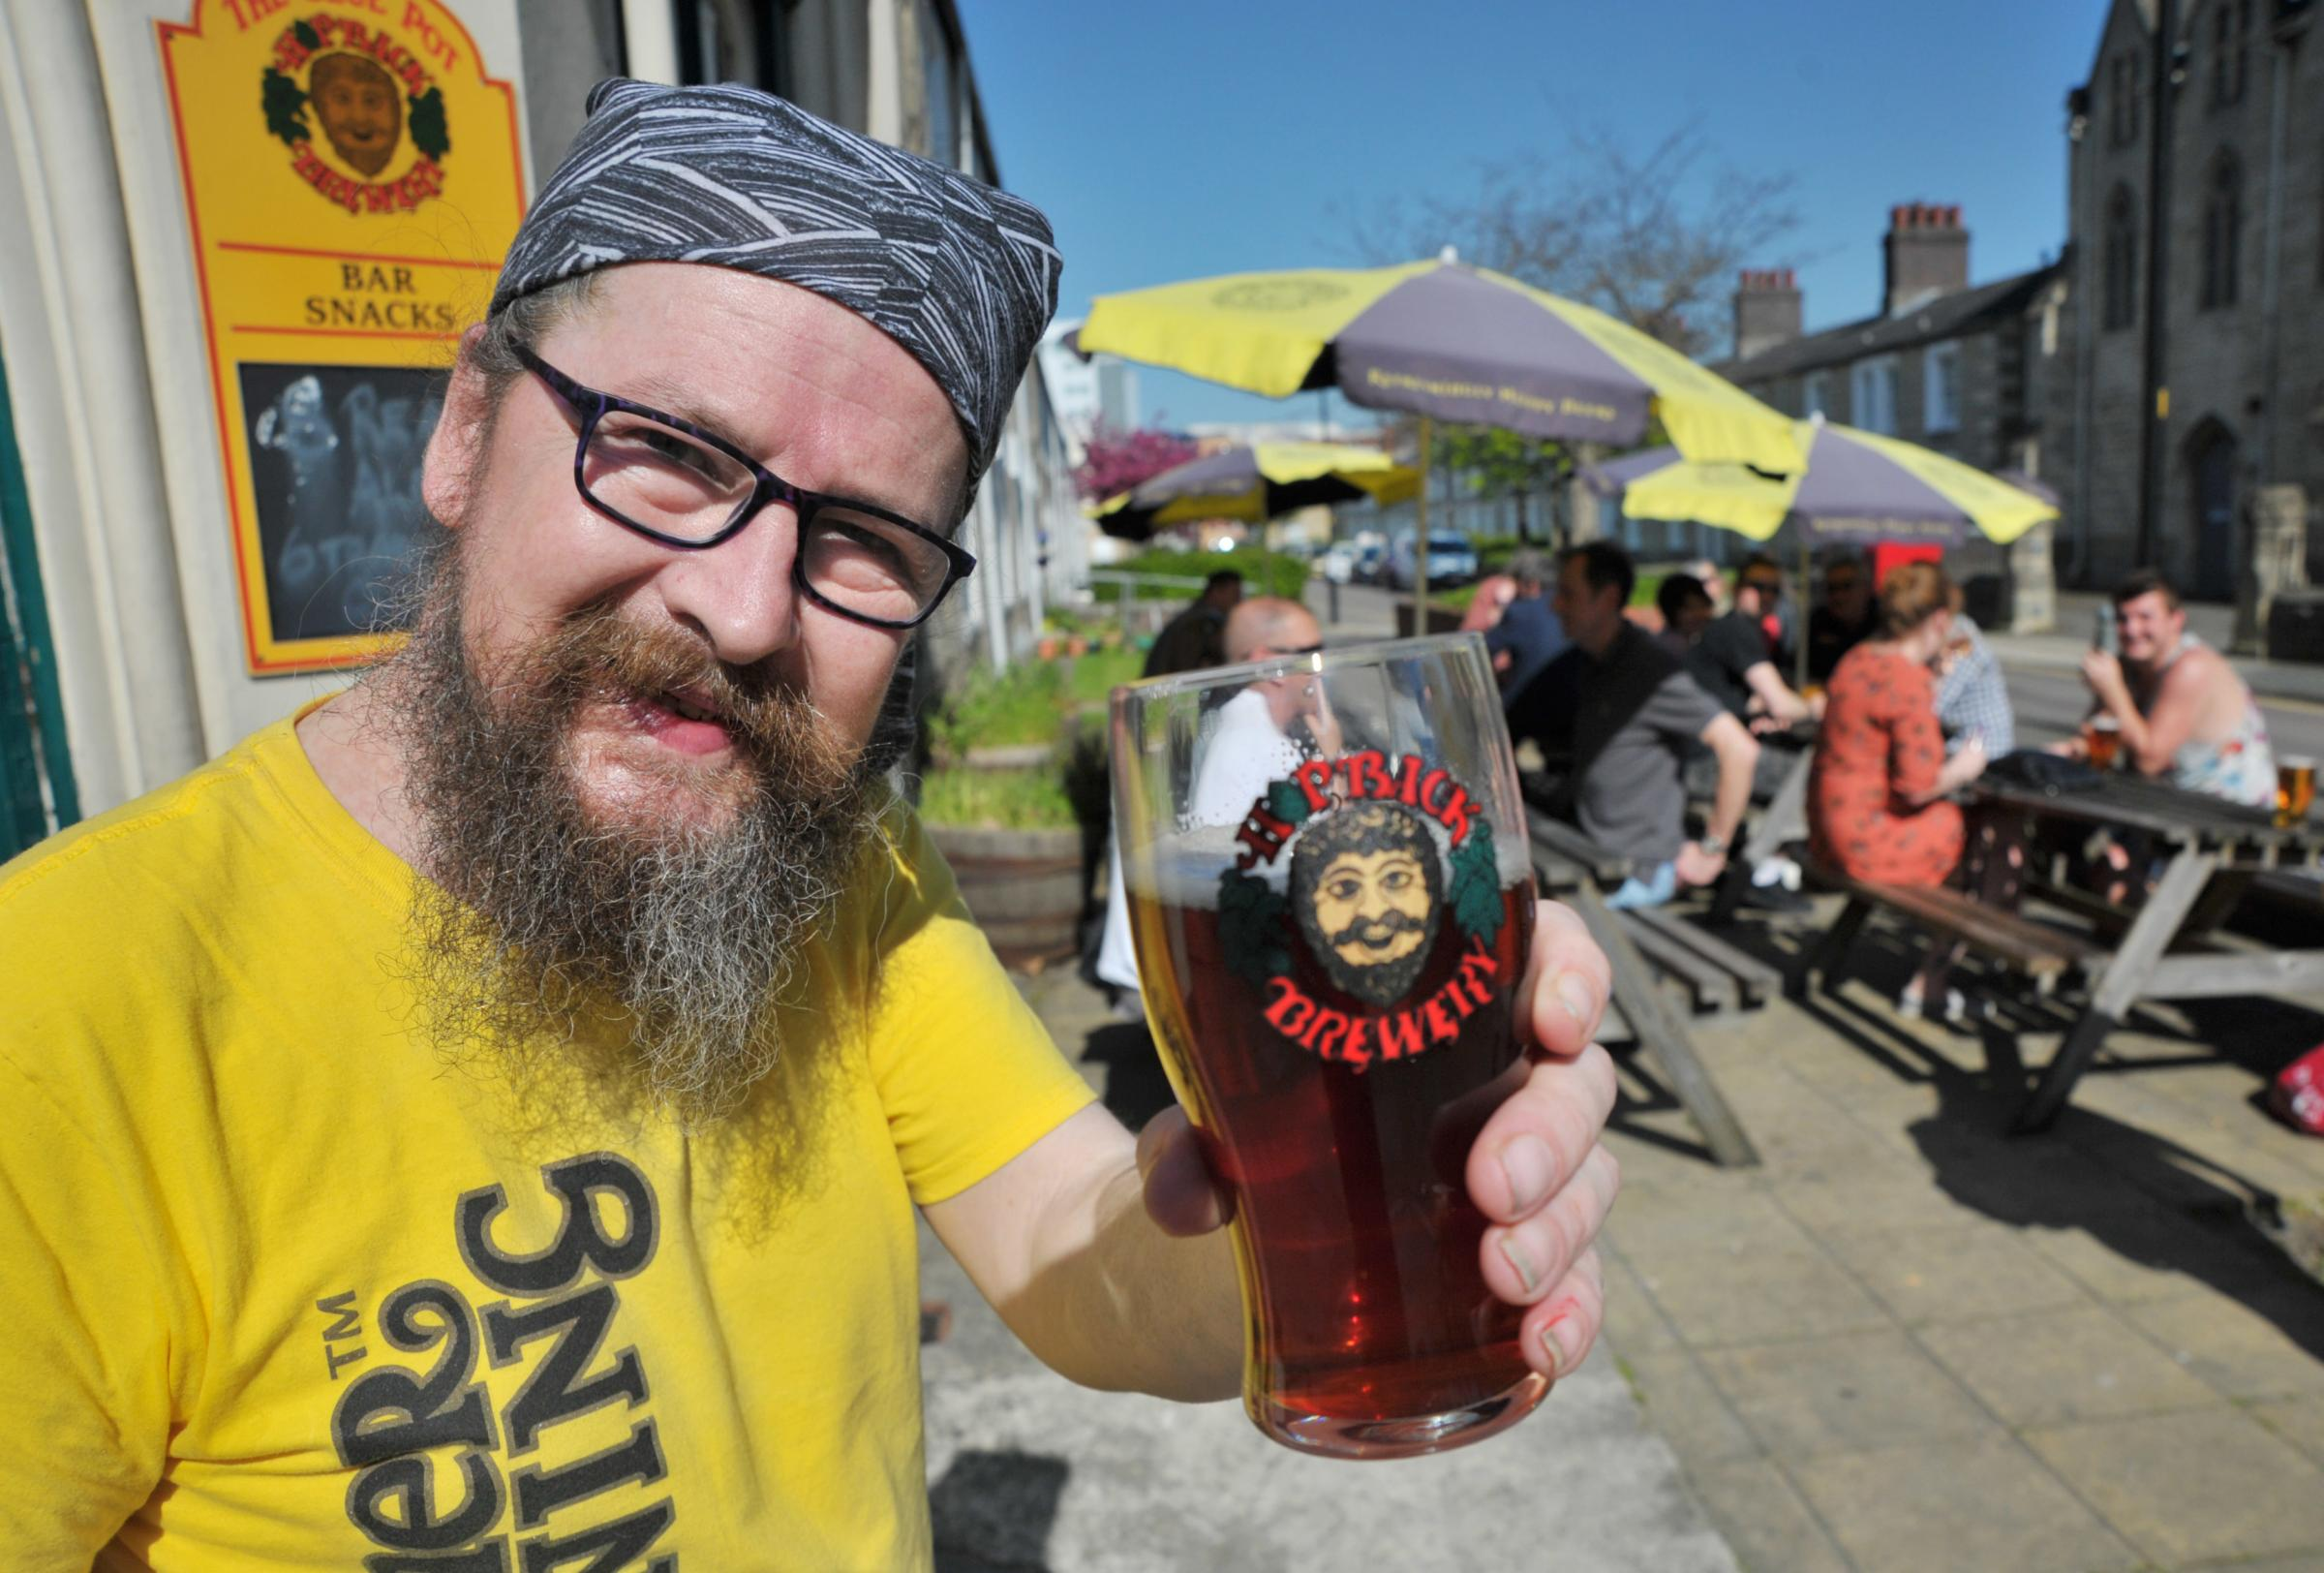 PICTURES: Sun proves a draw for drinkers at Glue Pot's ale festival